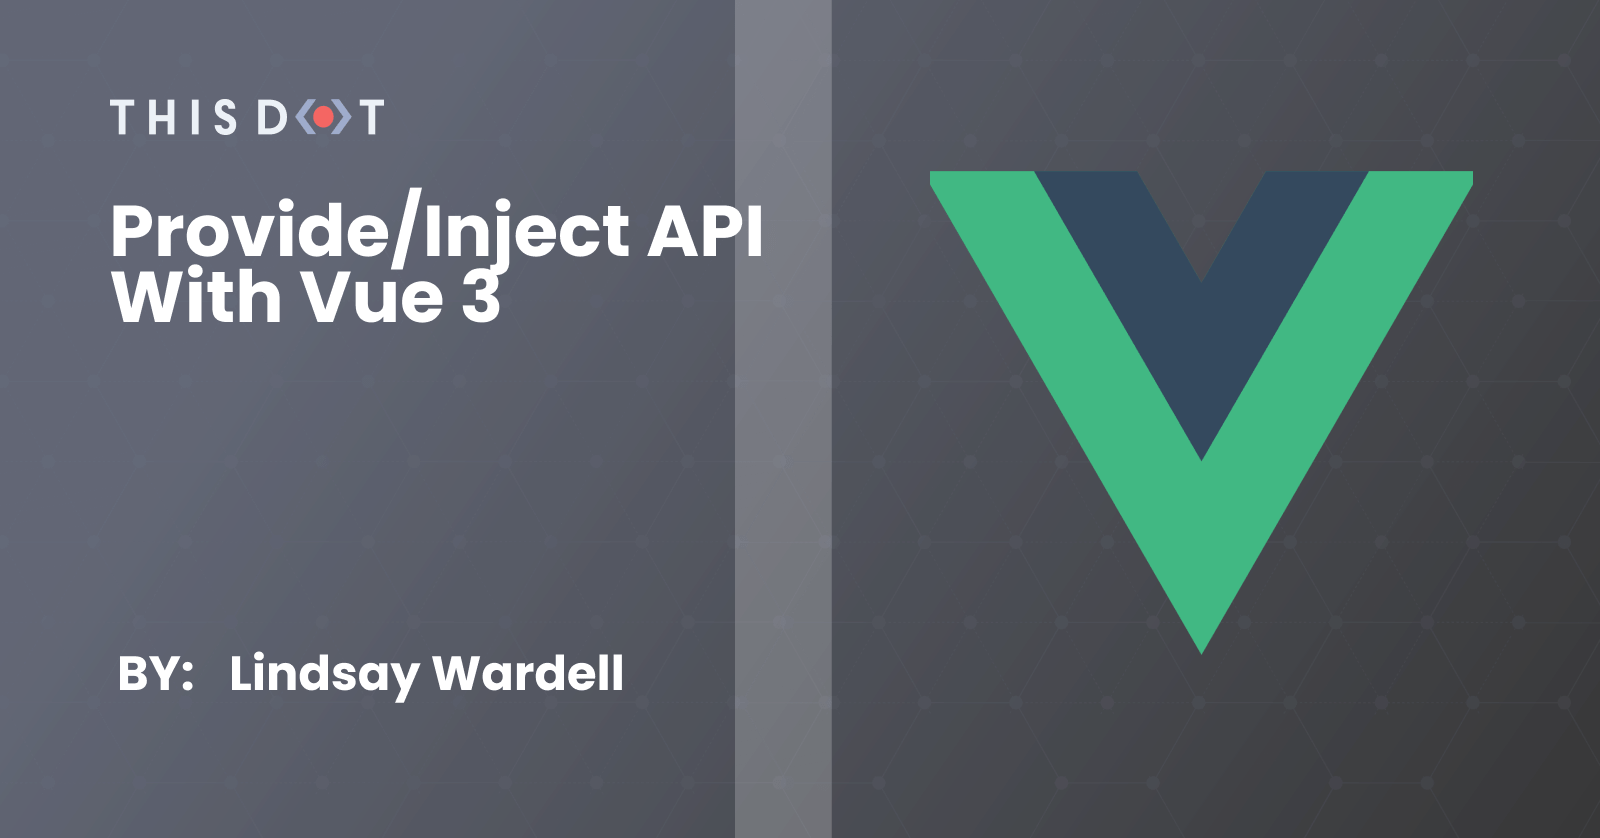 Provide/Inject API With Vue 3